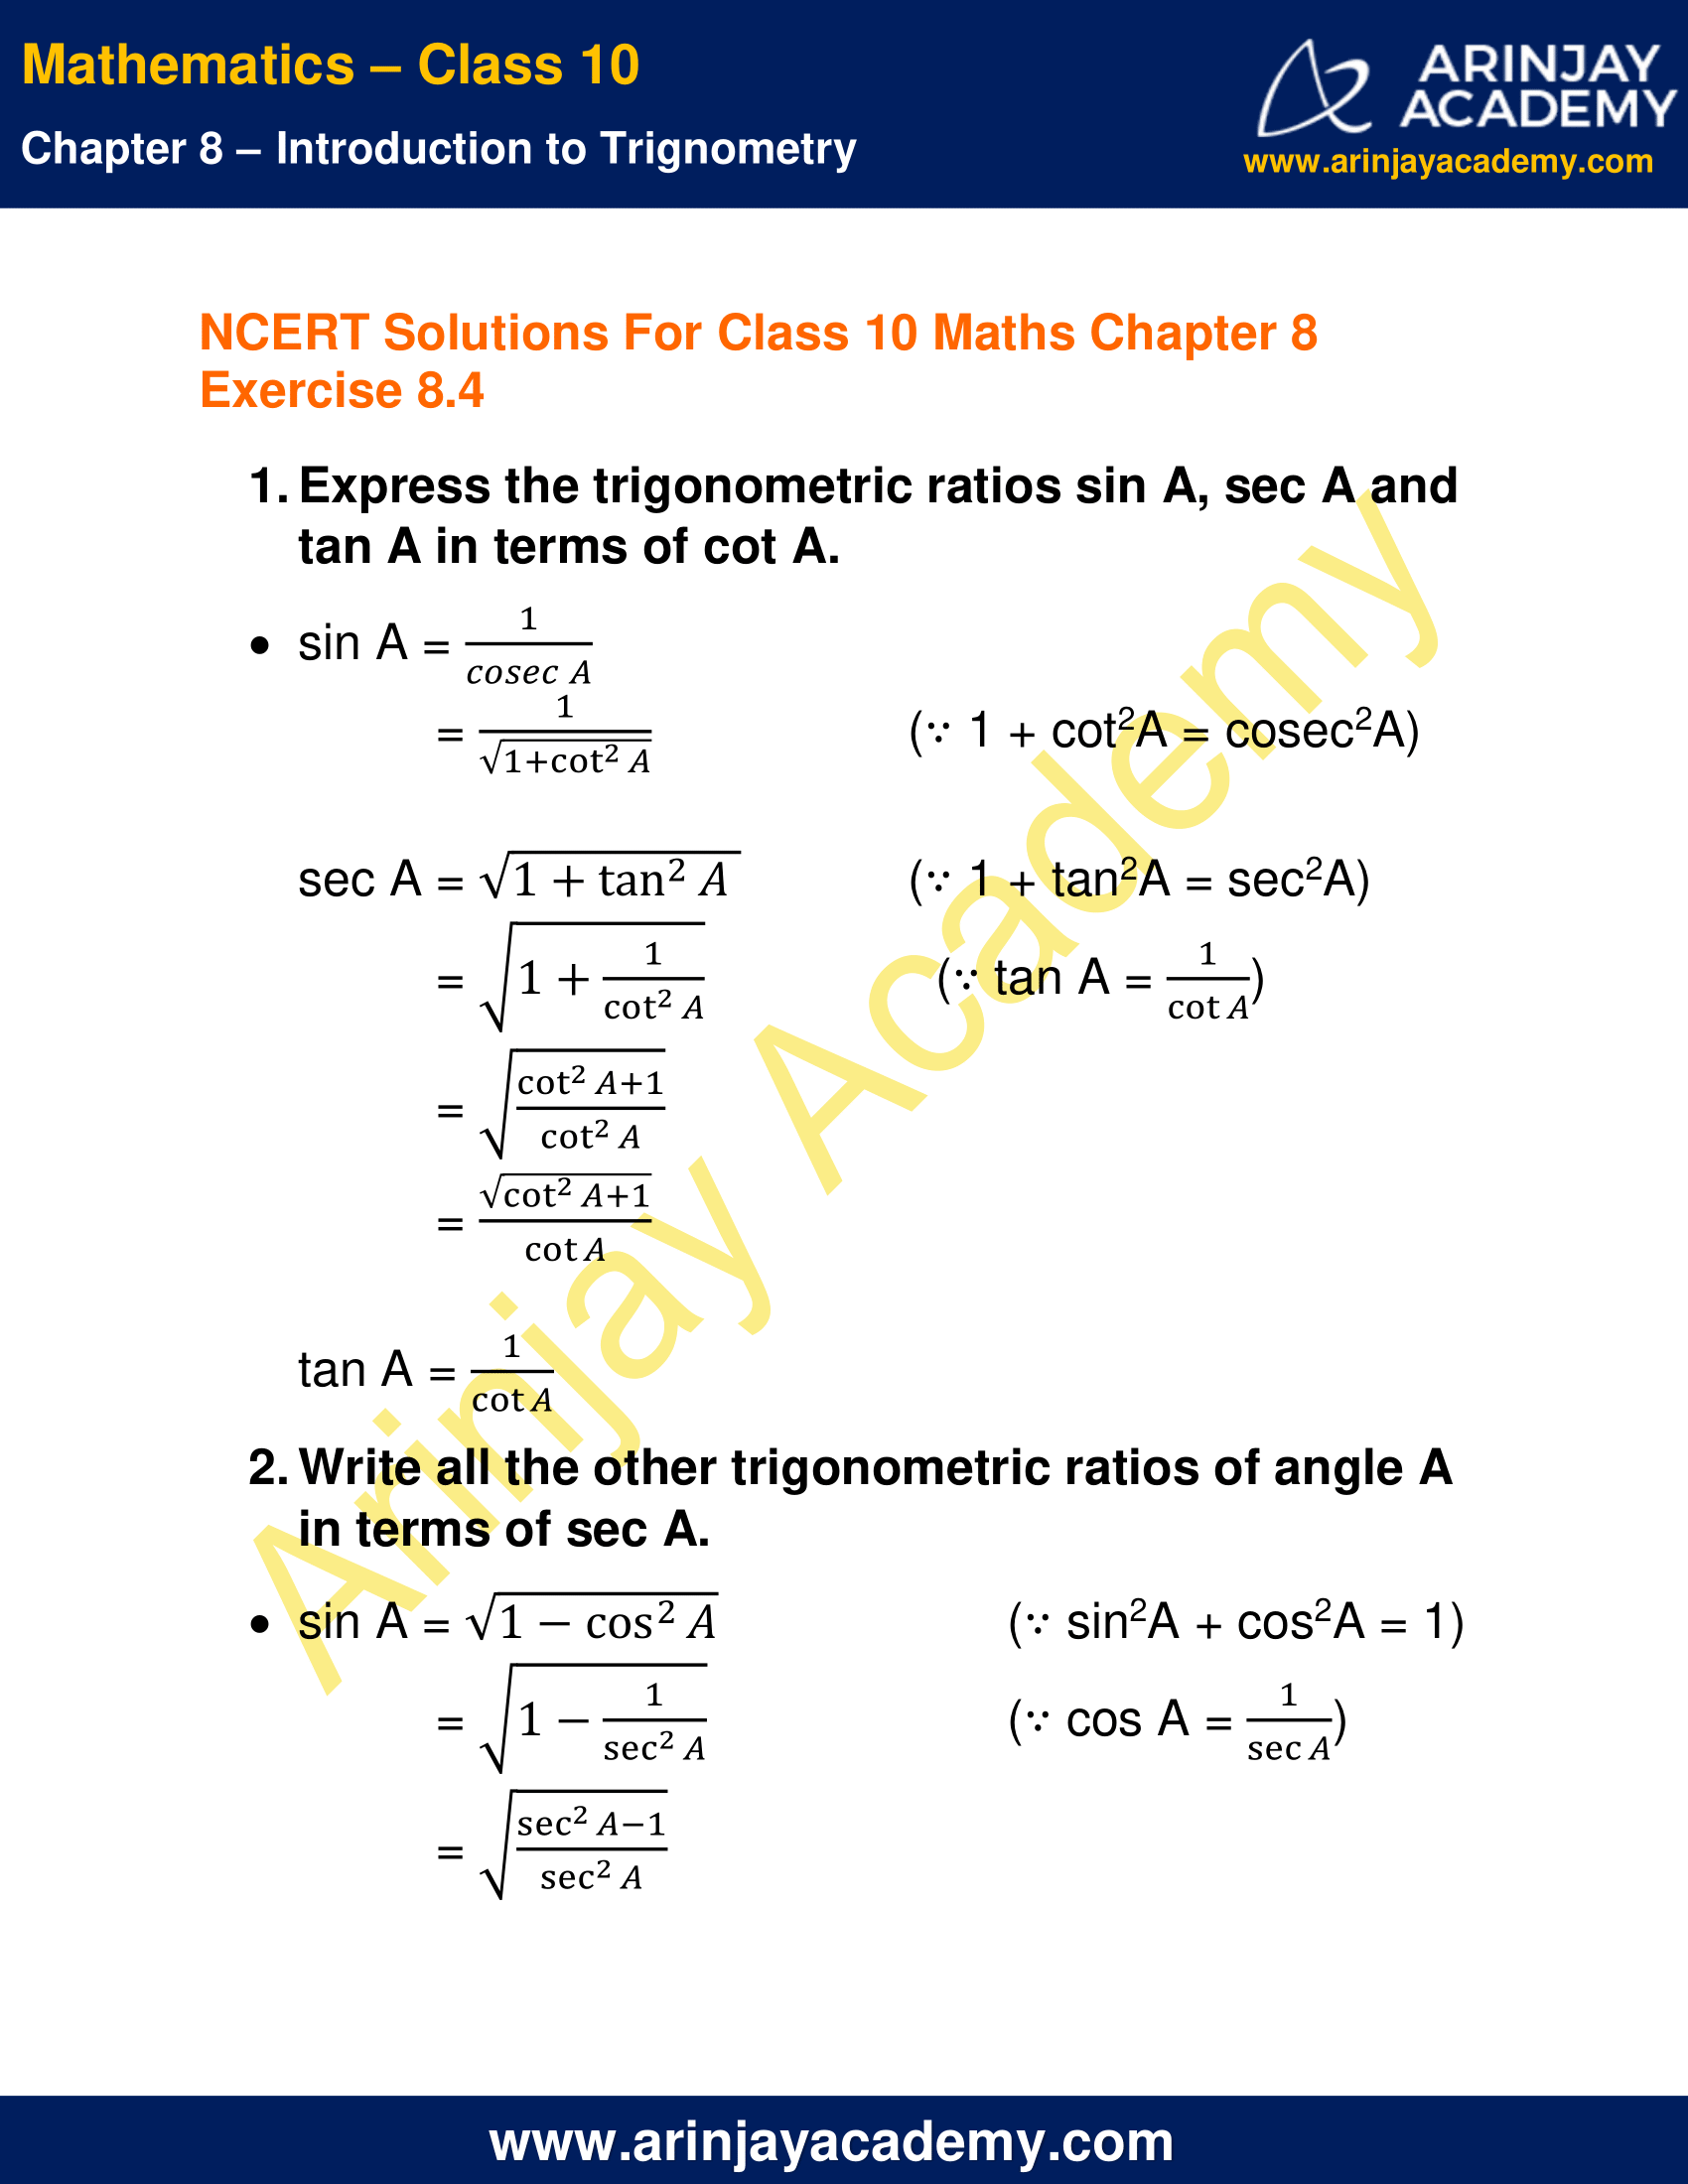 NCERT Solutions For Class 10 Maths Chapter 8 Exercise 8.4 image 1